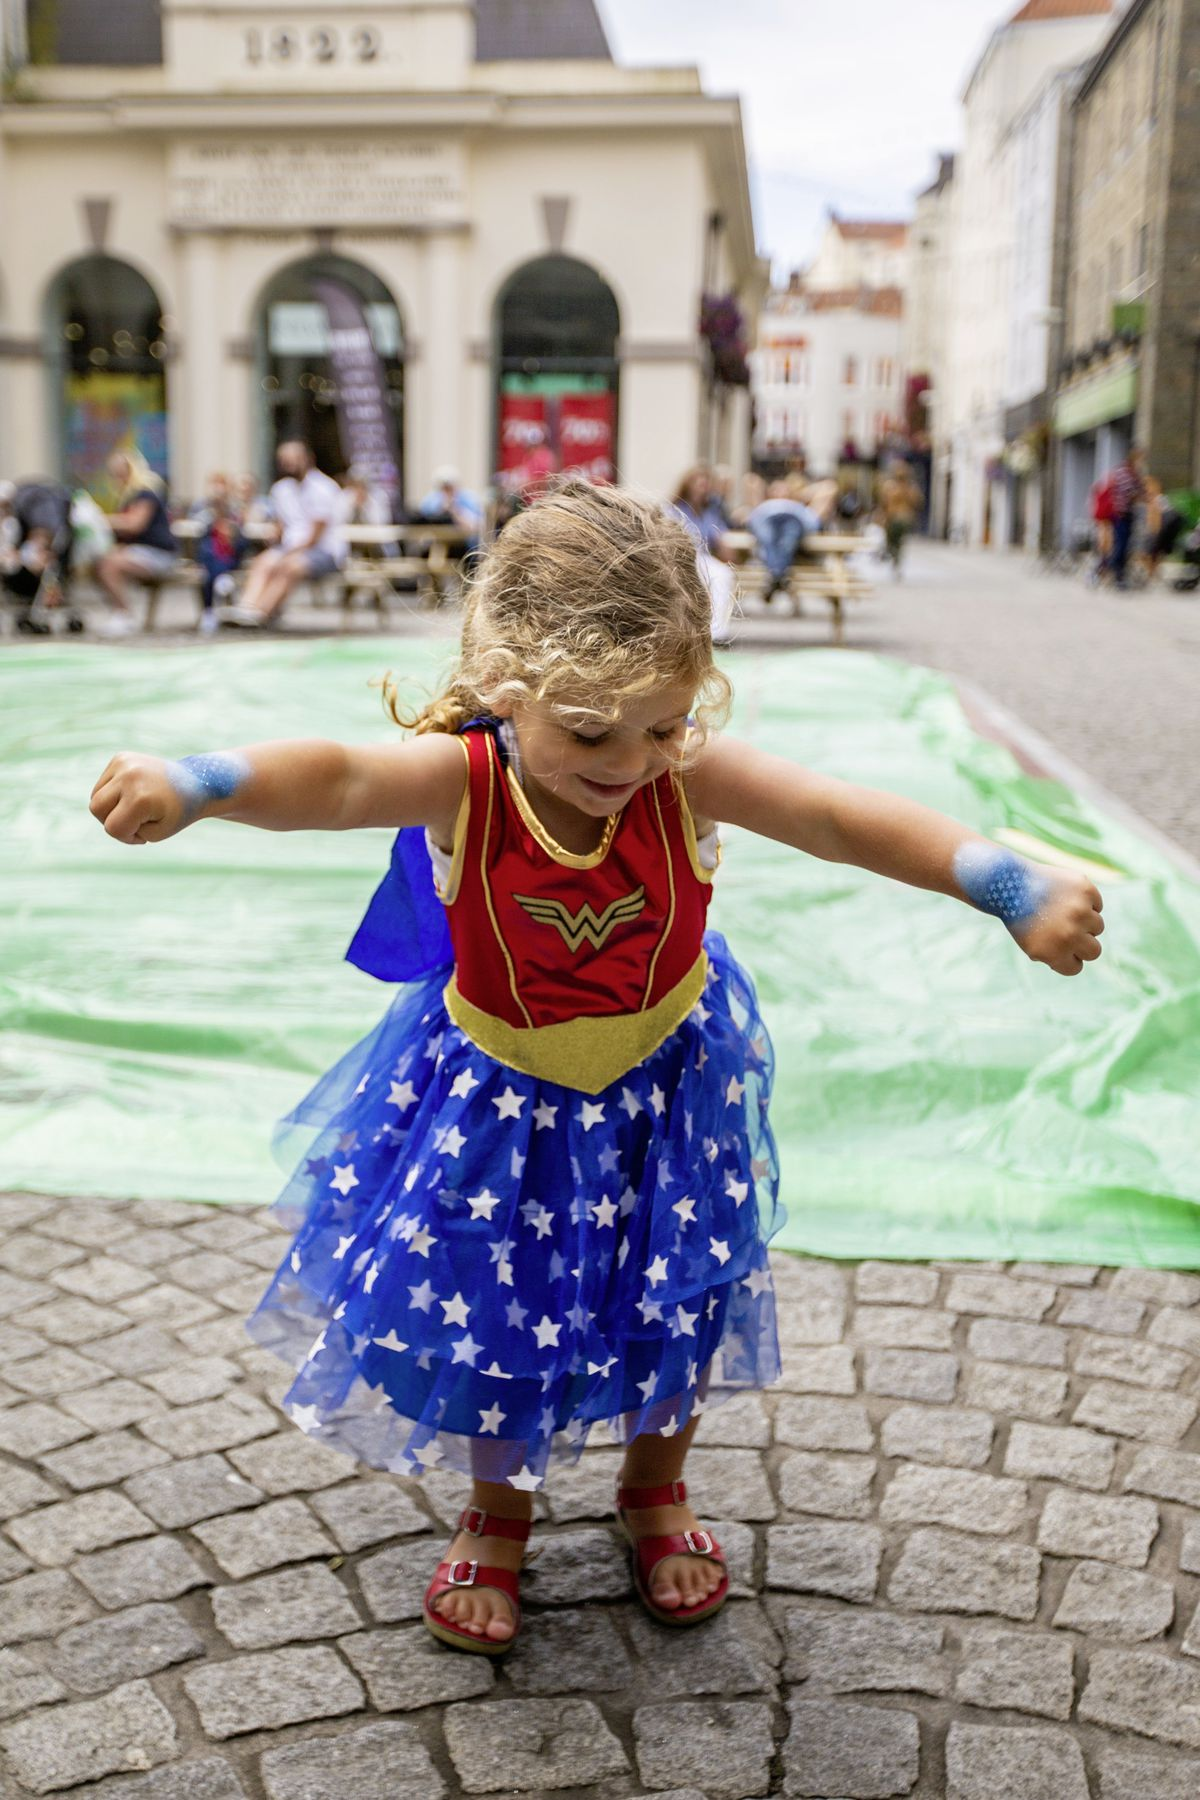 Aurora McConnell, aged 2, dressed as Wonderwoman for the Princesses and Superheros Day. (Picture by Sophie Rabey, 29797233)